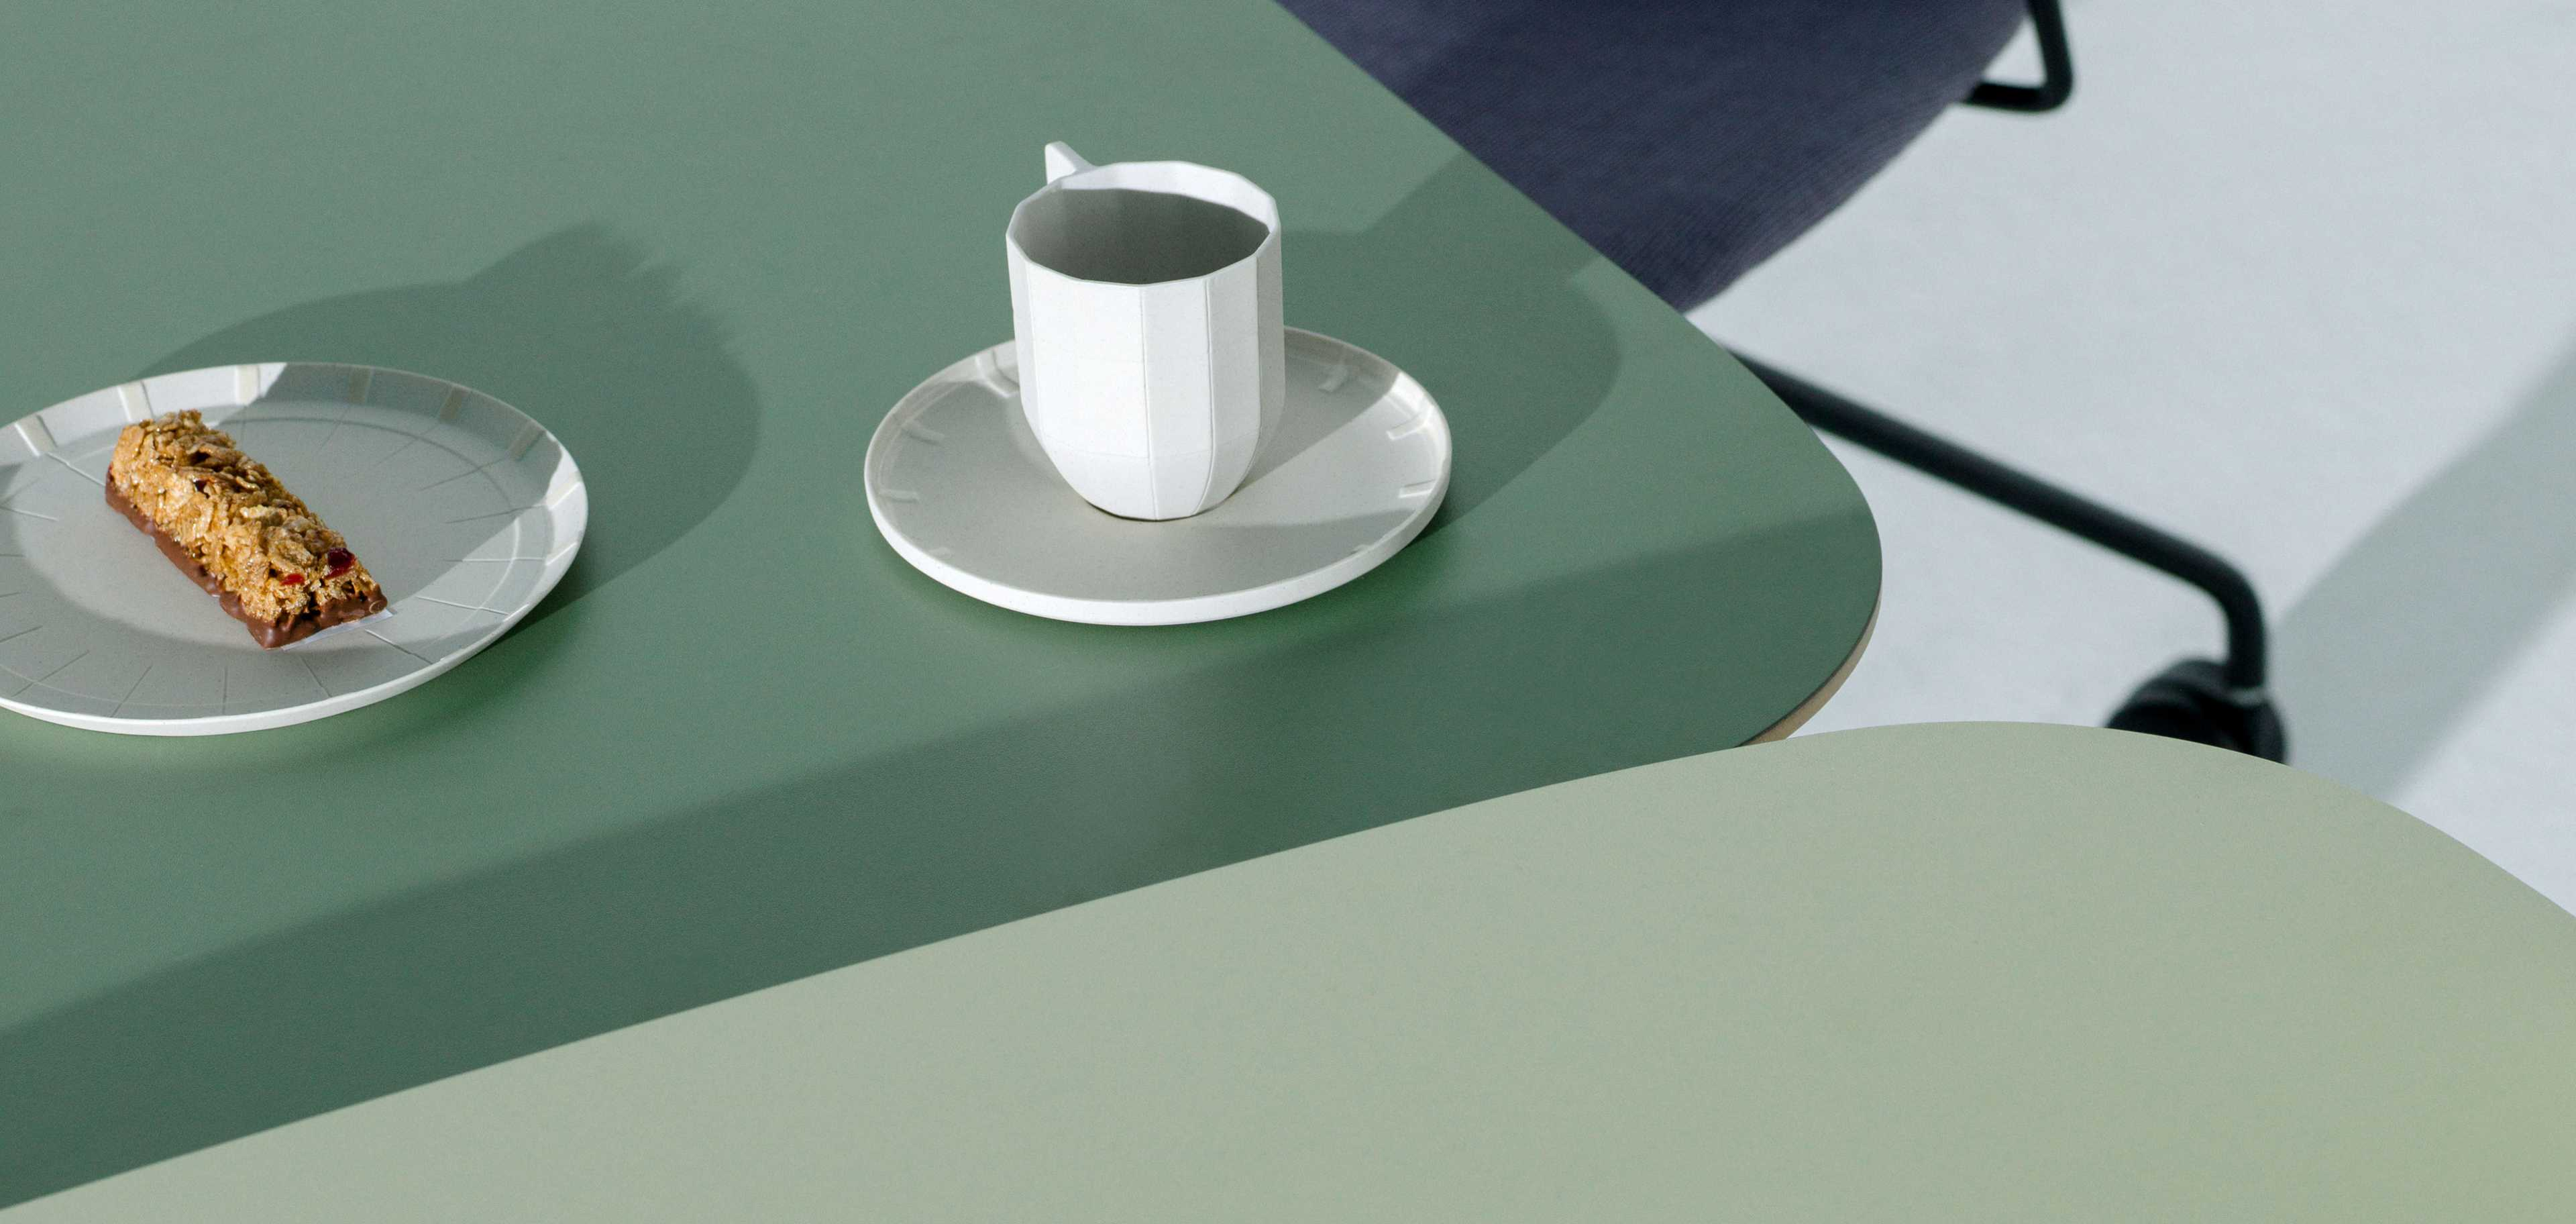 Green desks with coffee